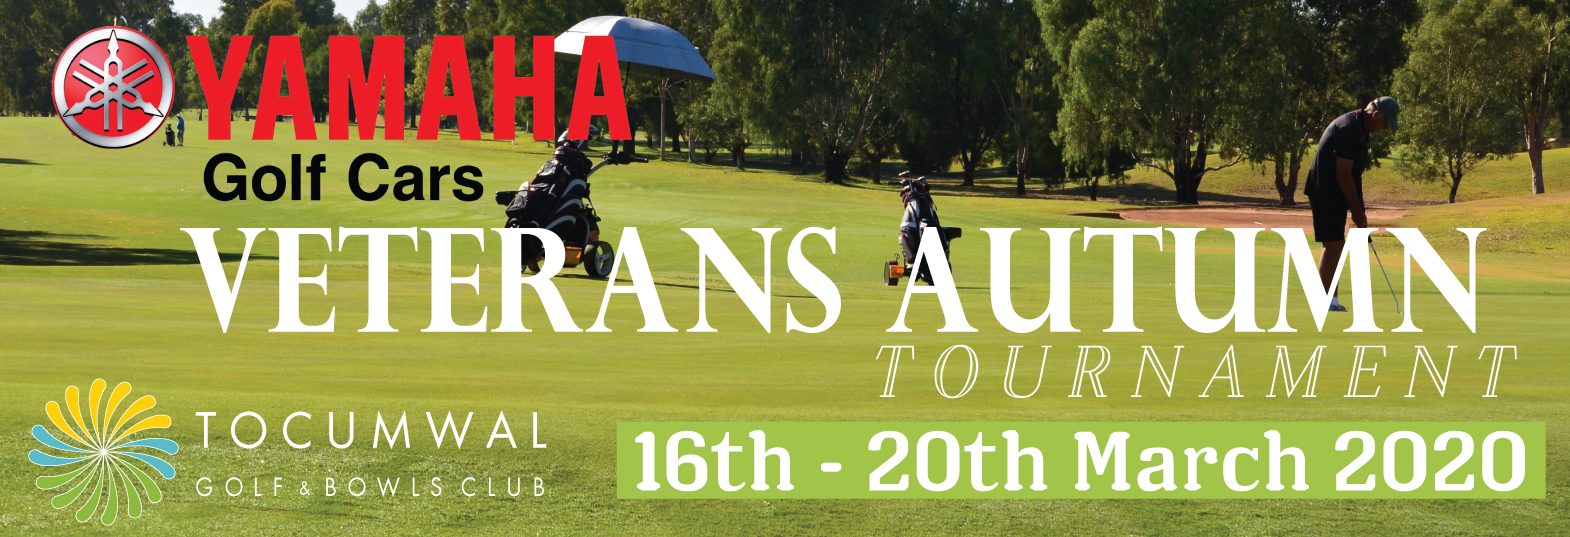 2020-Yamaha-Veterans-Autumn-Tournament-banner